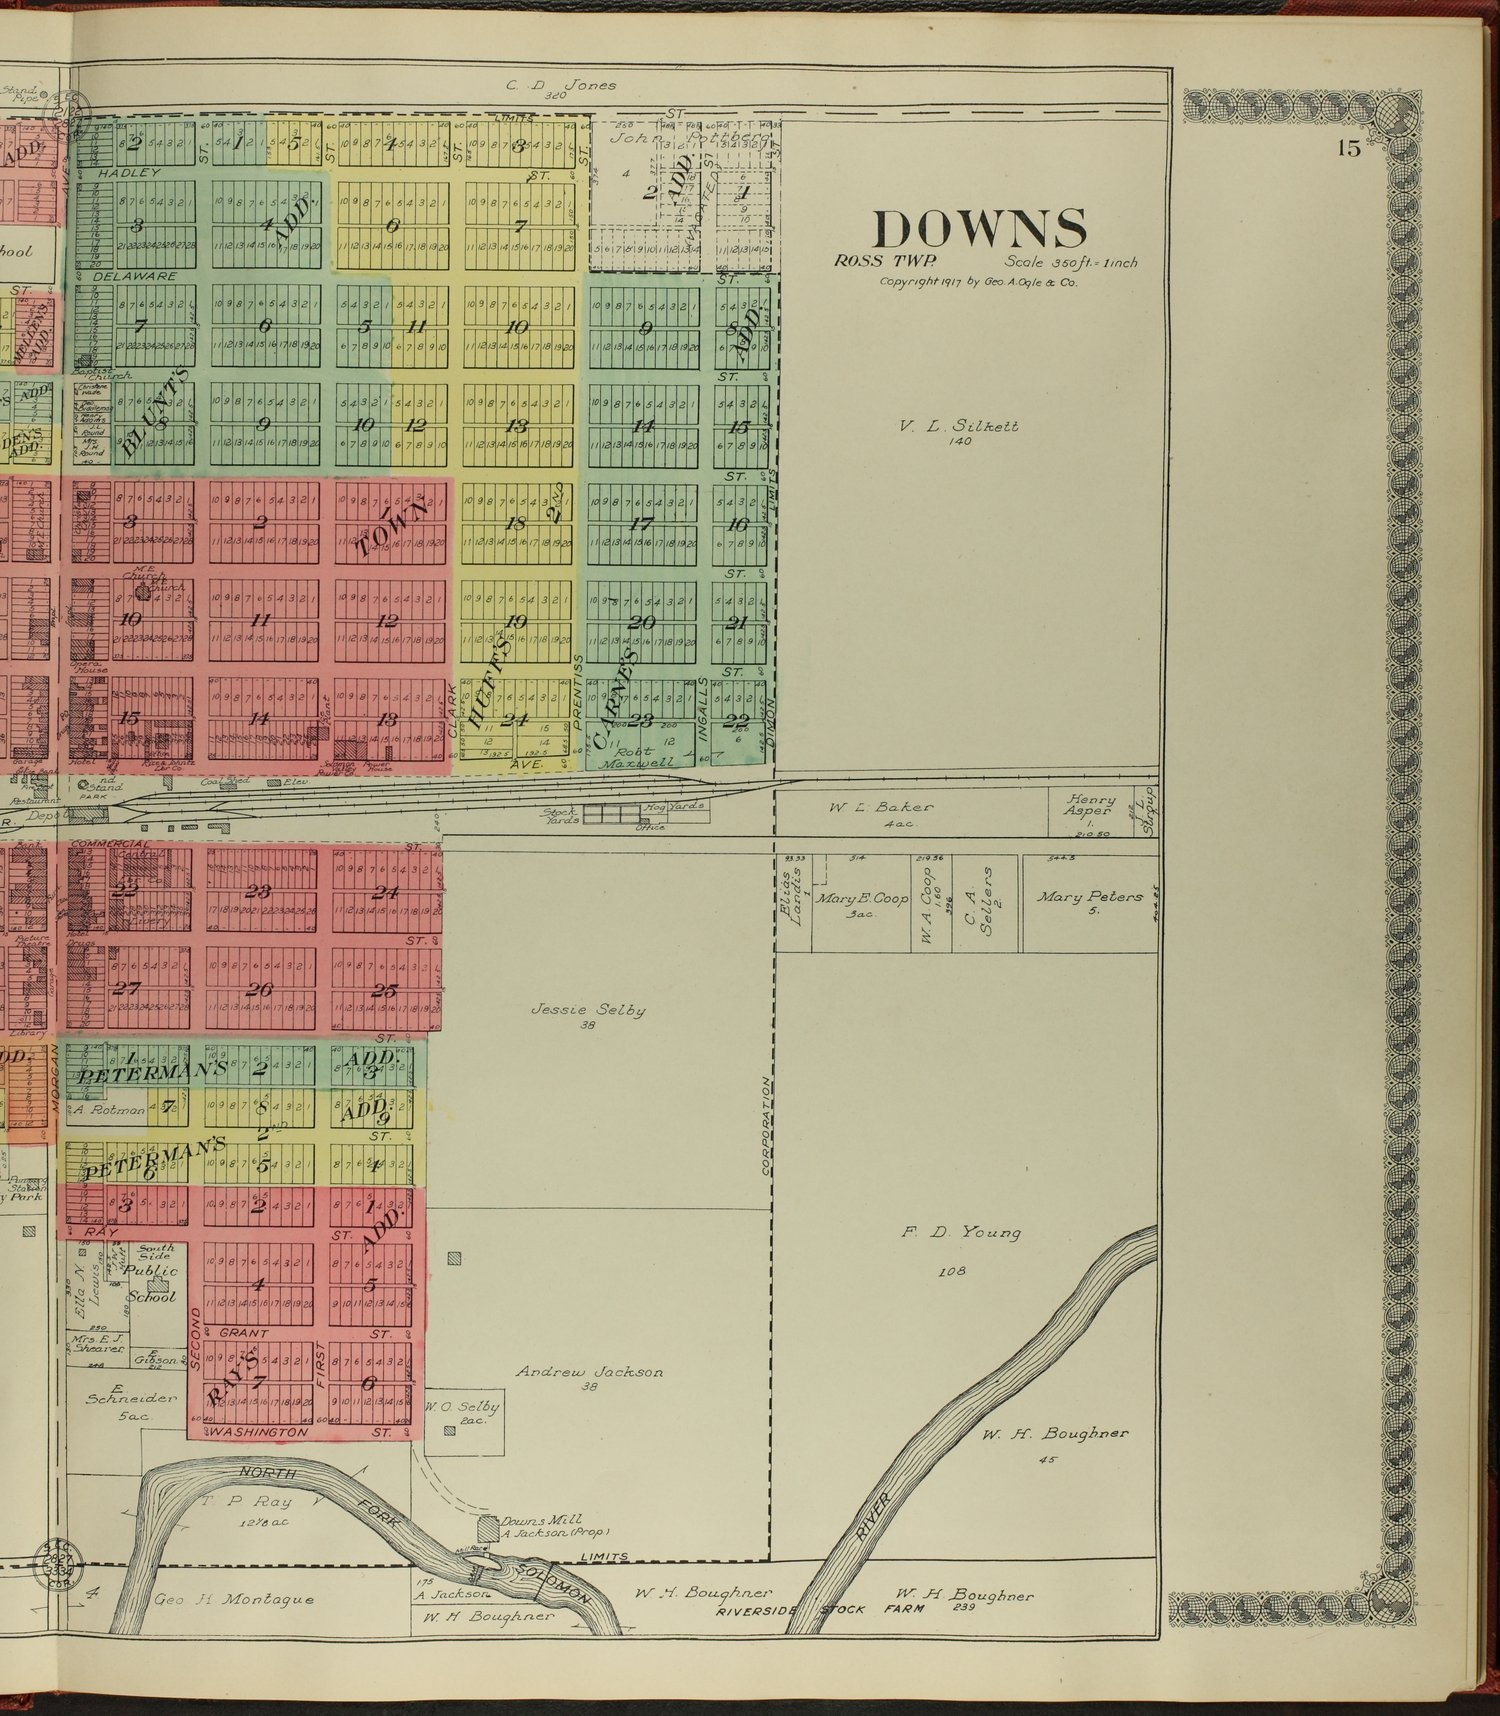 Standard atlas of Osborne County, Kansas - 15